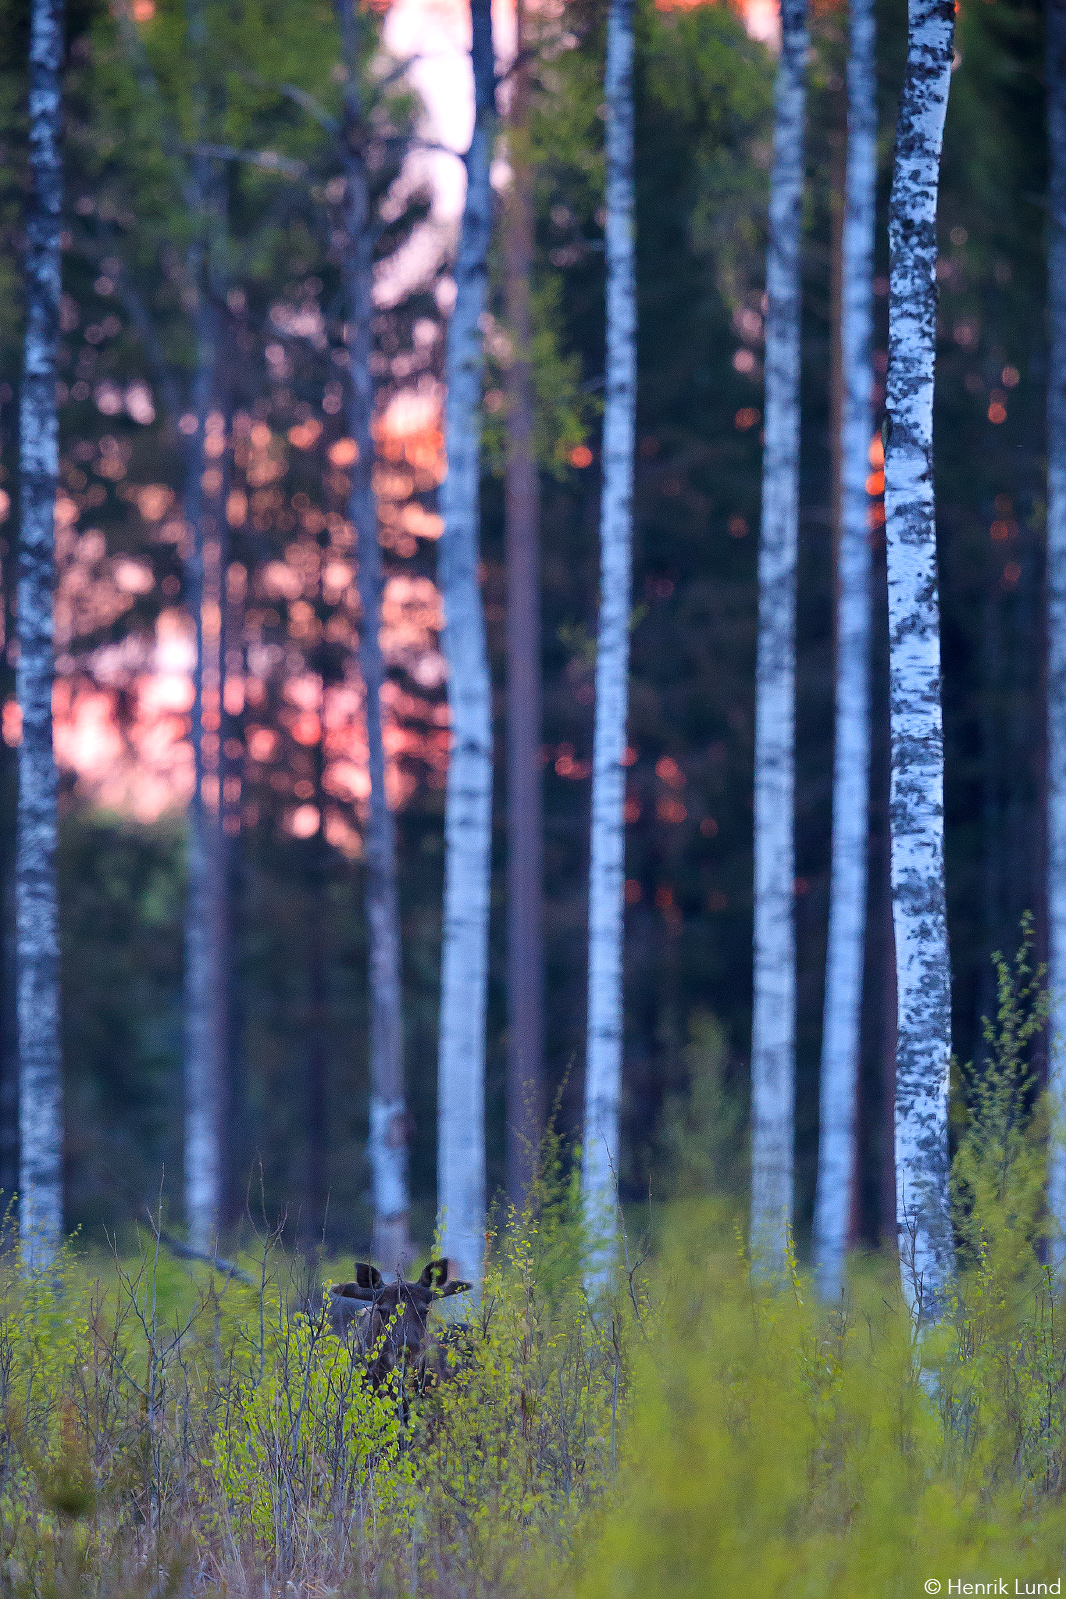 Young male moose feeding on young spruces a late night in may. Pockar, Lappträsk, Finland. May 2017.